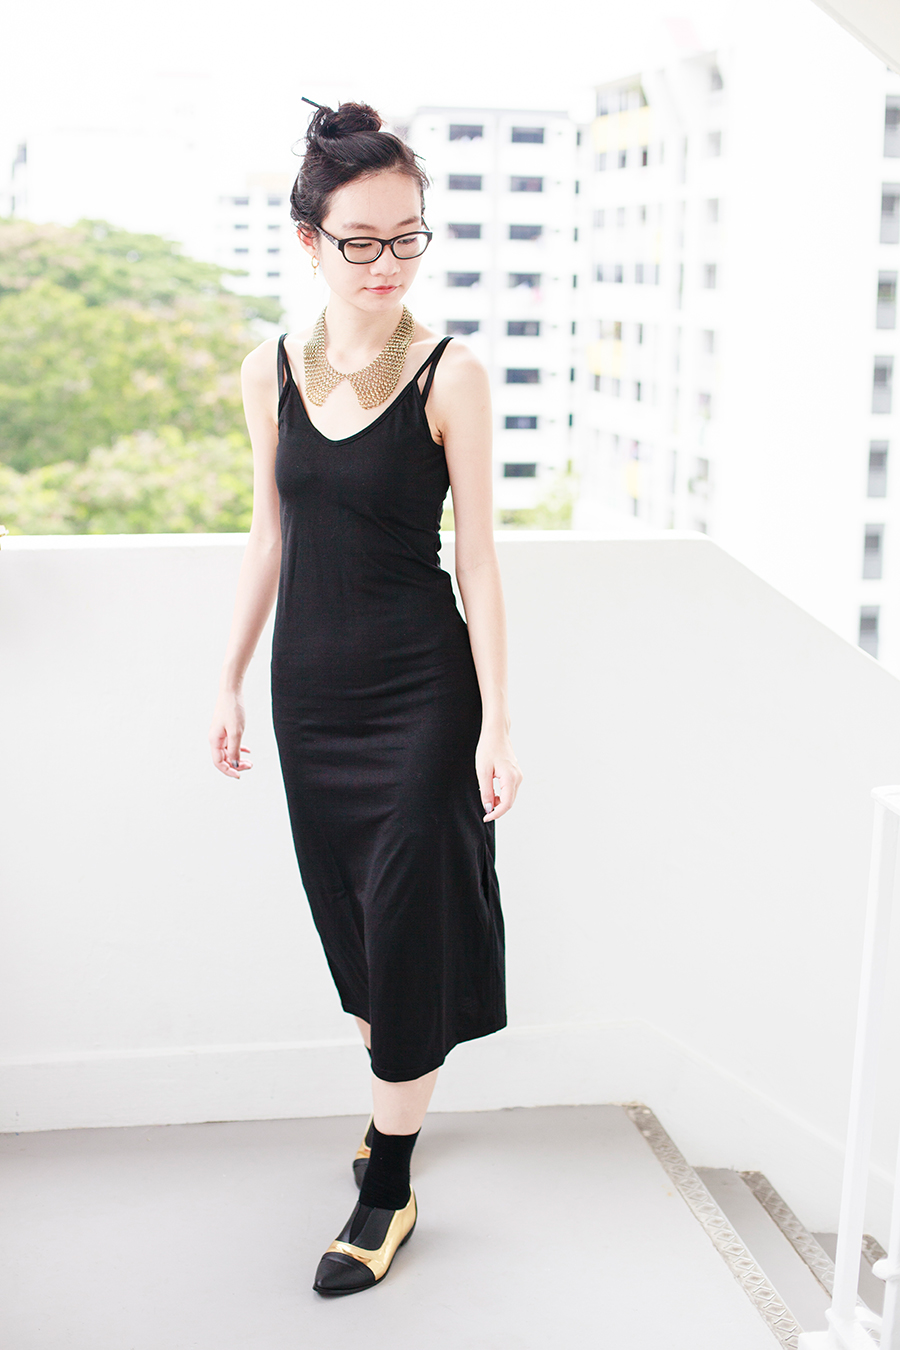 Day to night outfit: Newdress v-neck strappy black dress, Forever 21 gold chain collar necklace, Gap black frame glasses, Taobao black crew socks, Something Borrowed Dual-Toned black and gold Pointed Flats via Zalora.